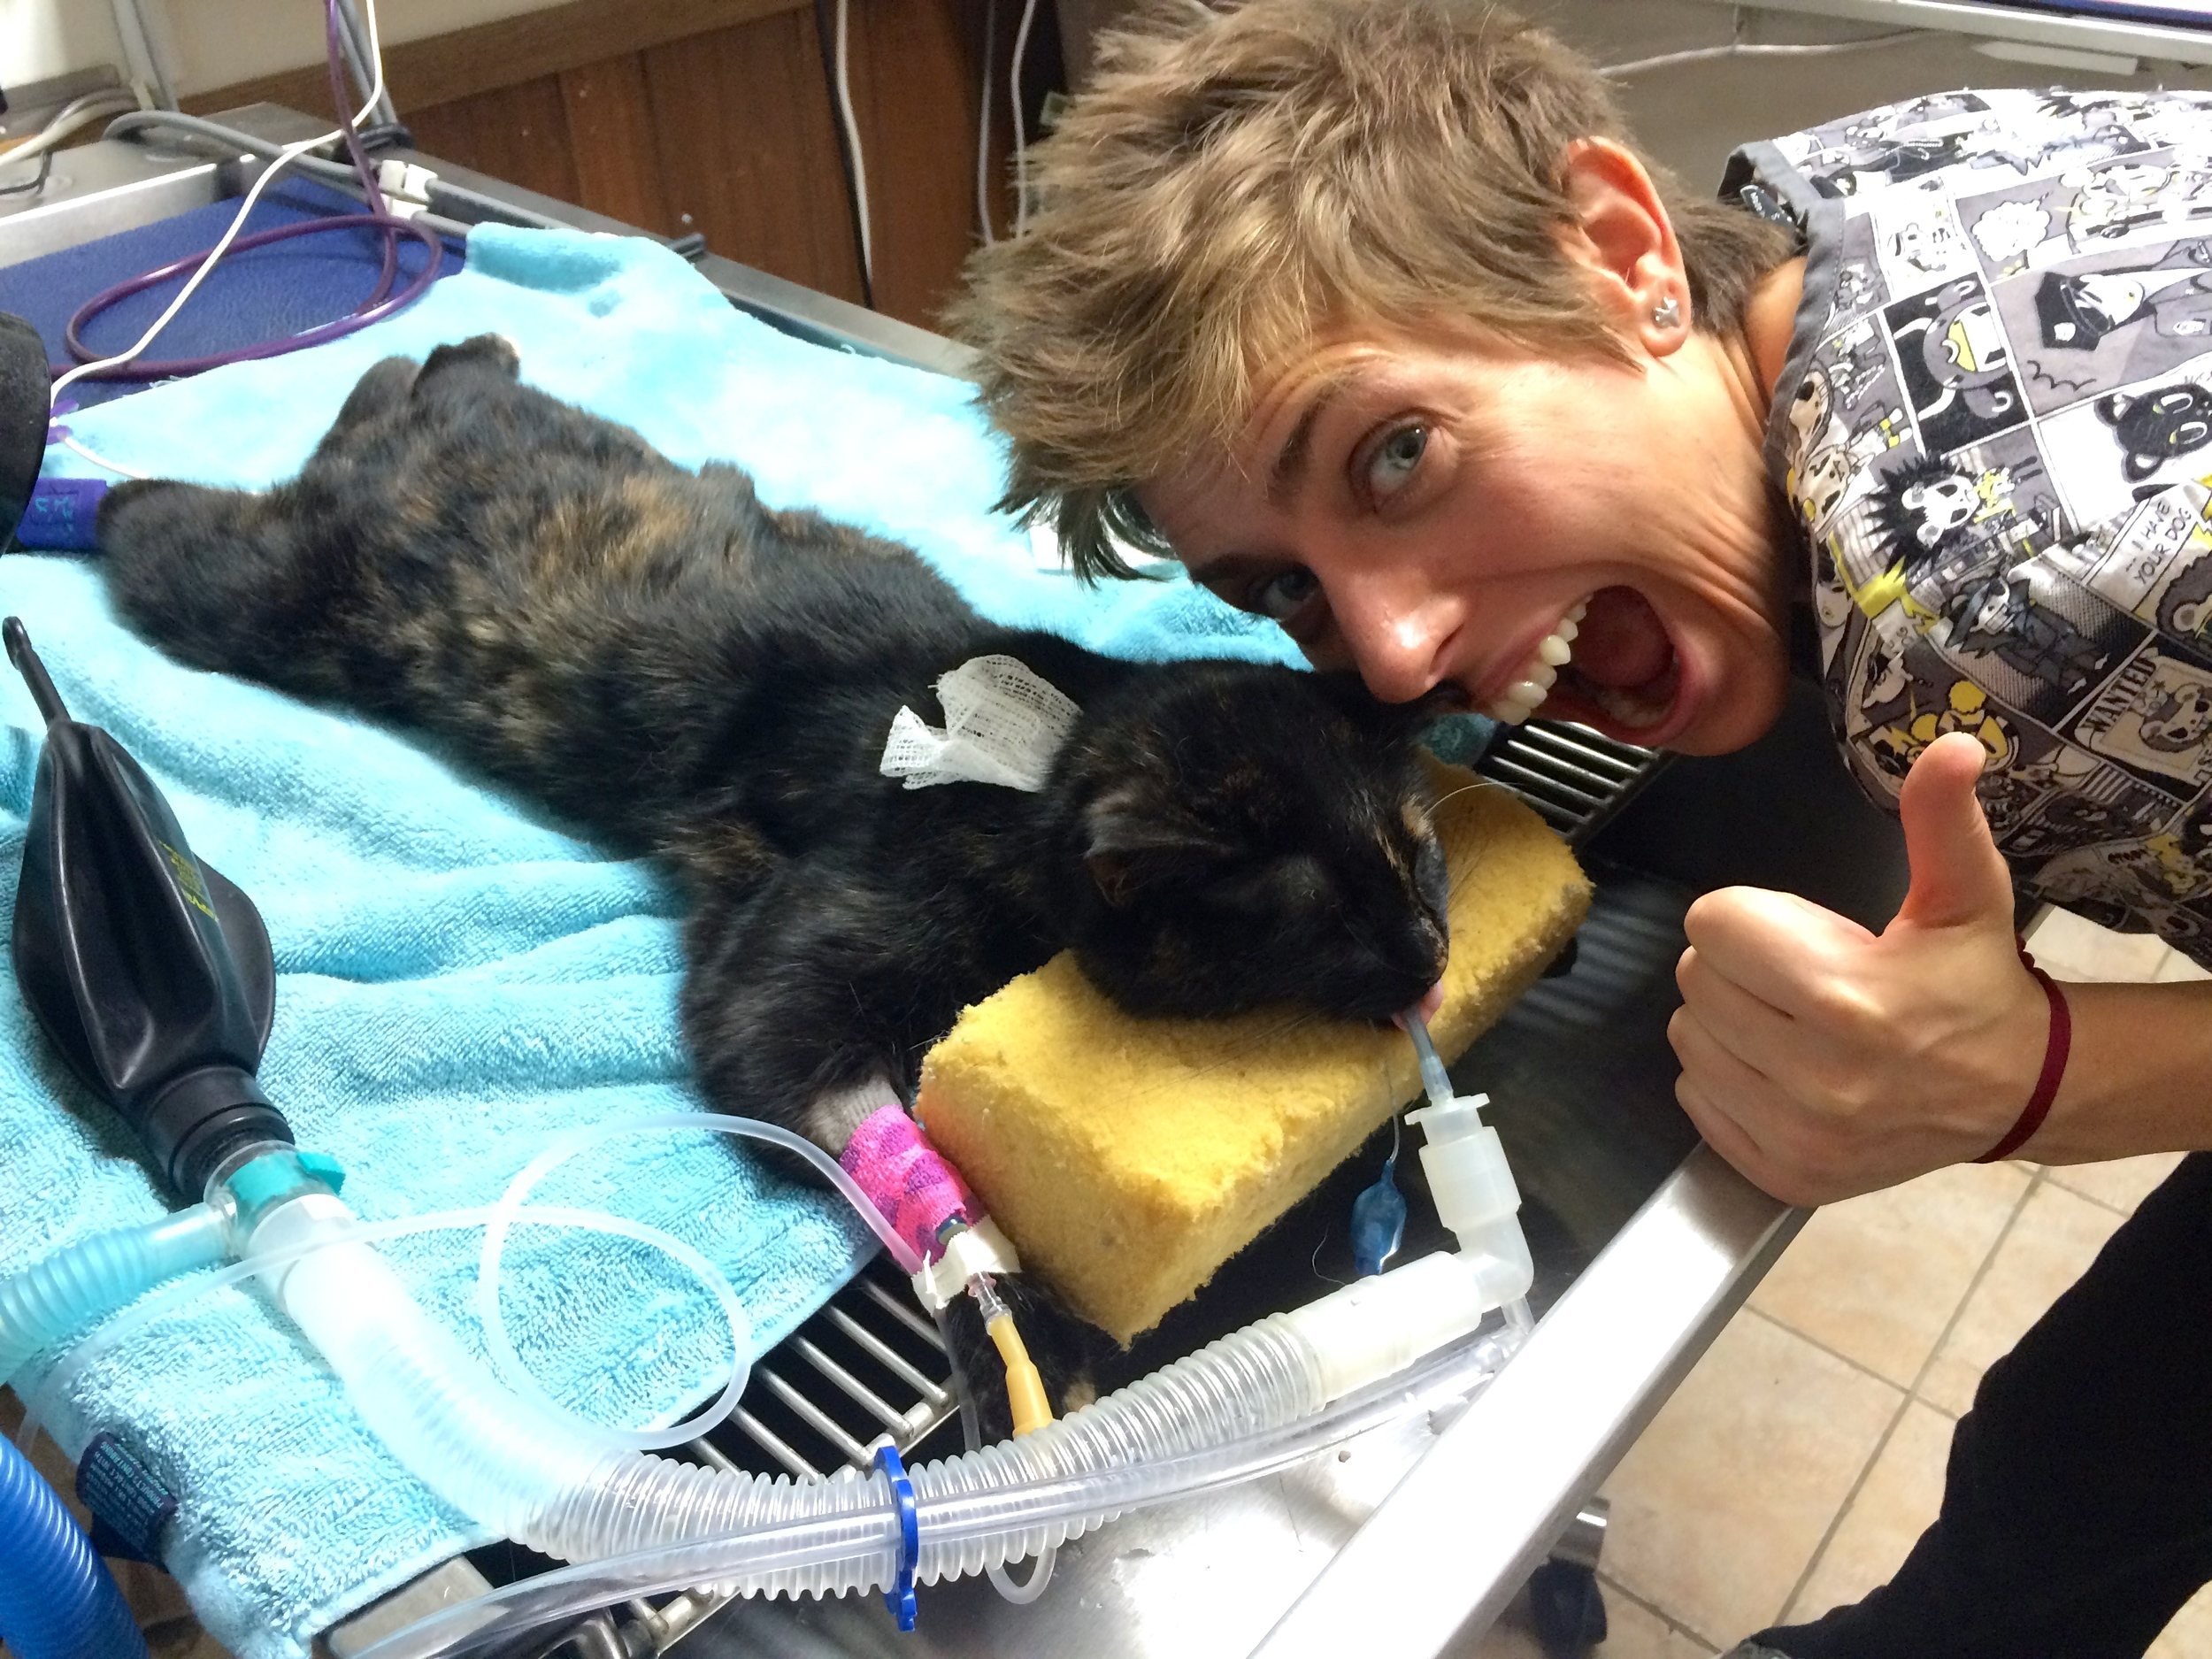 Cathy helping with a dental on Dr. Liz's cat at East Towne Pet Clinic